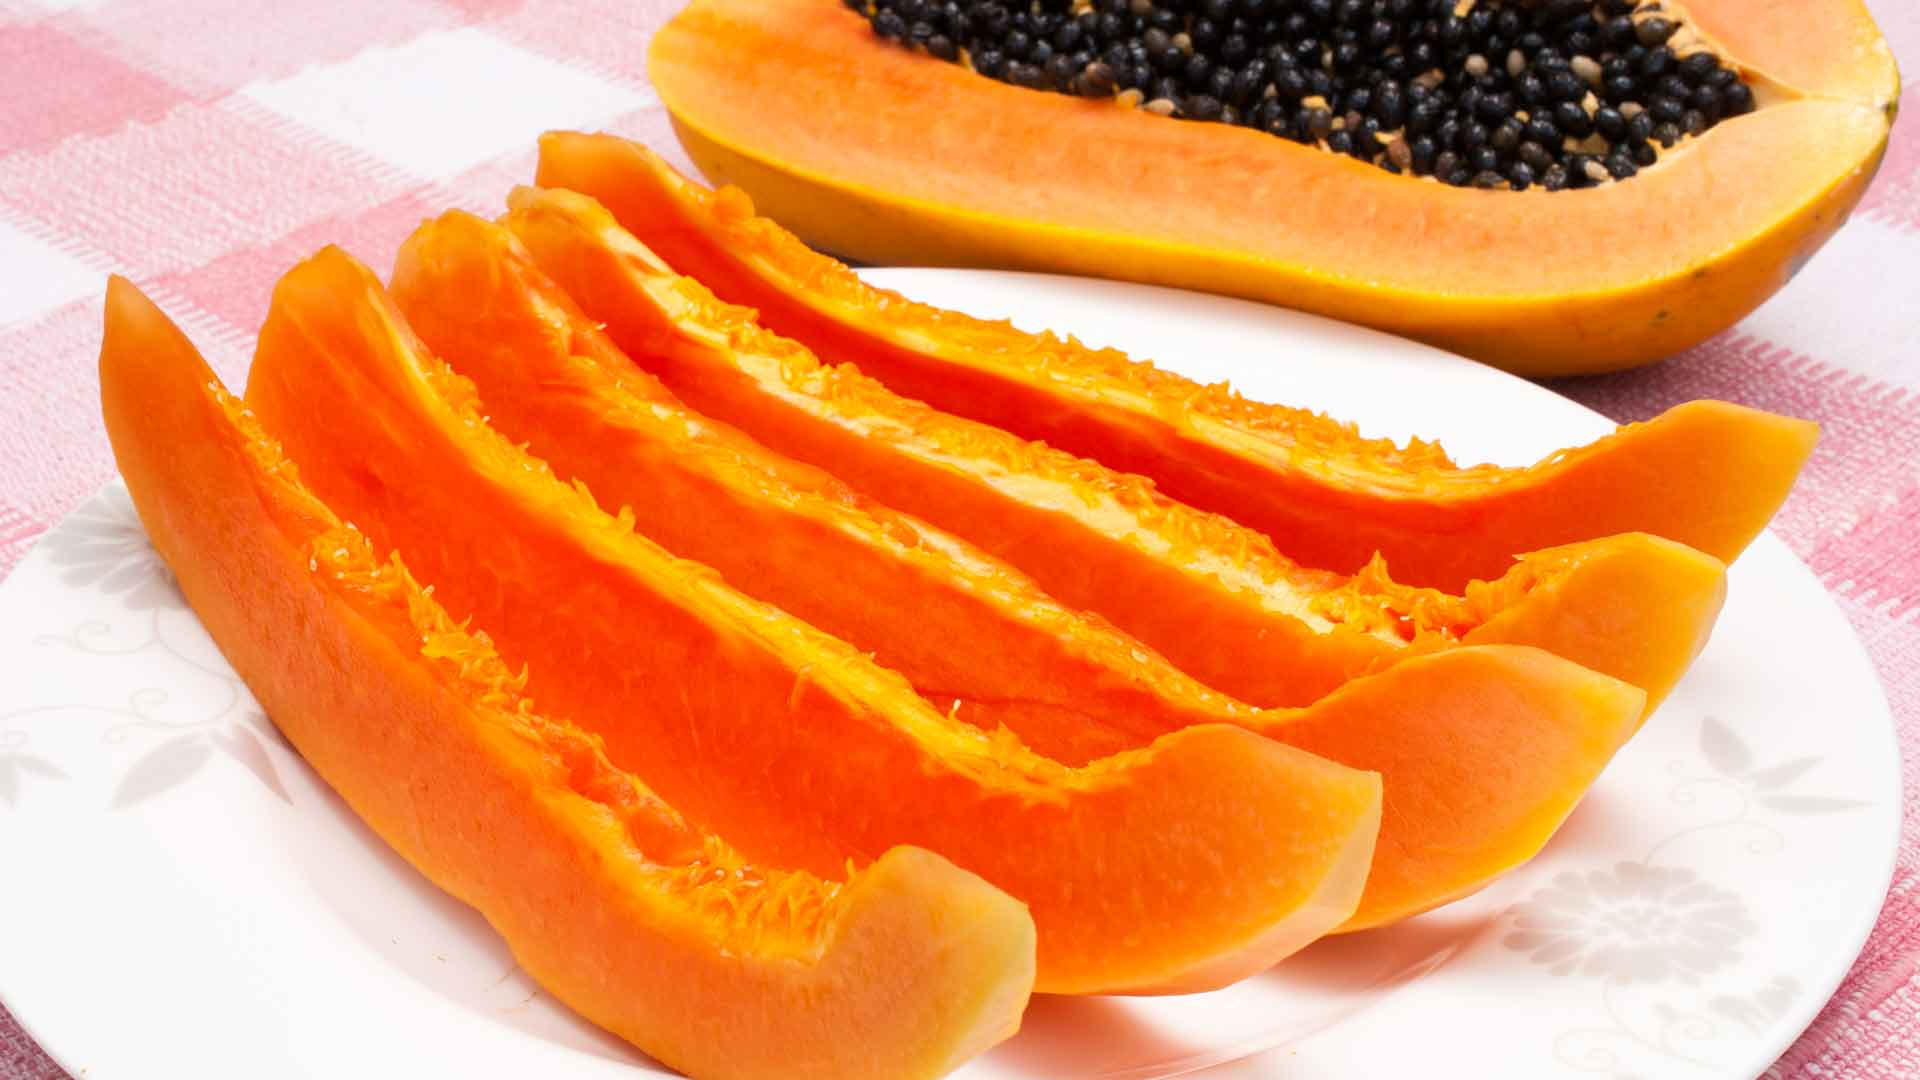 Fresh papaya pieces